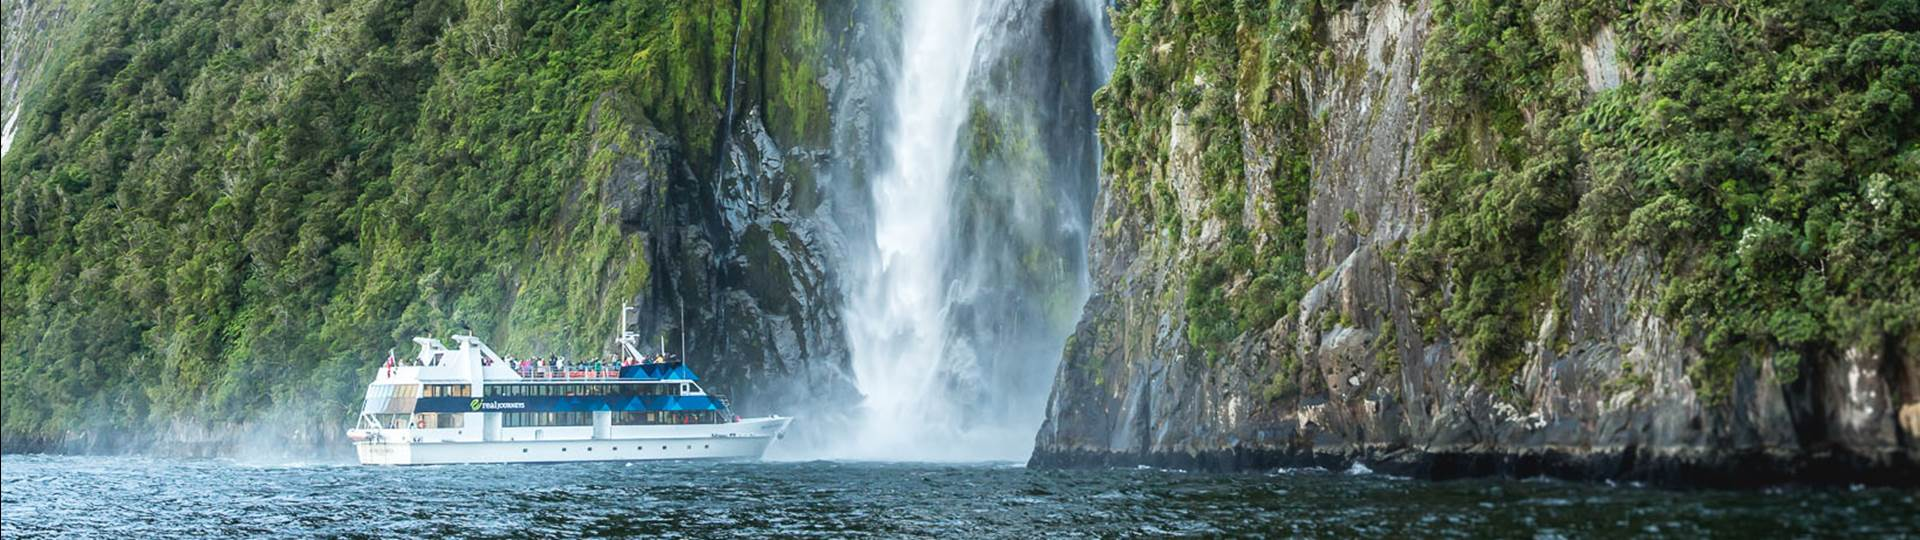 Boat under a waterfall in Milford Sound